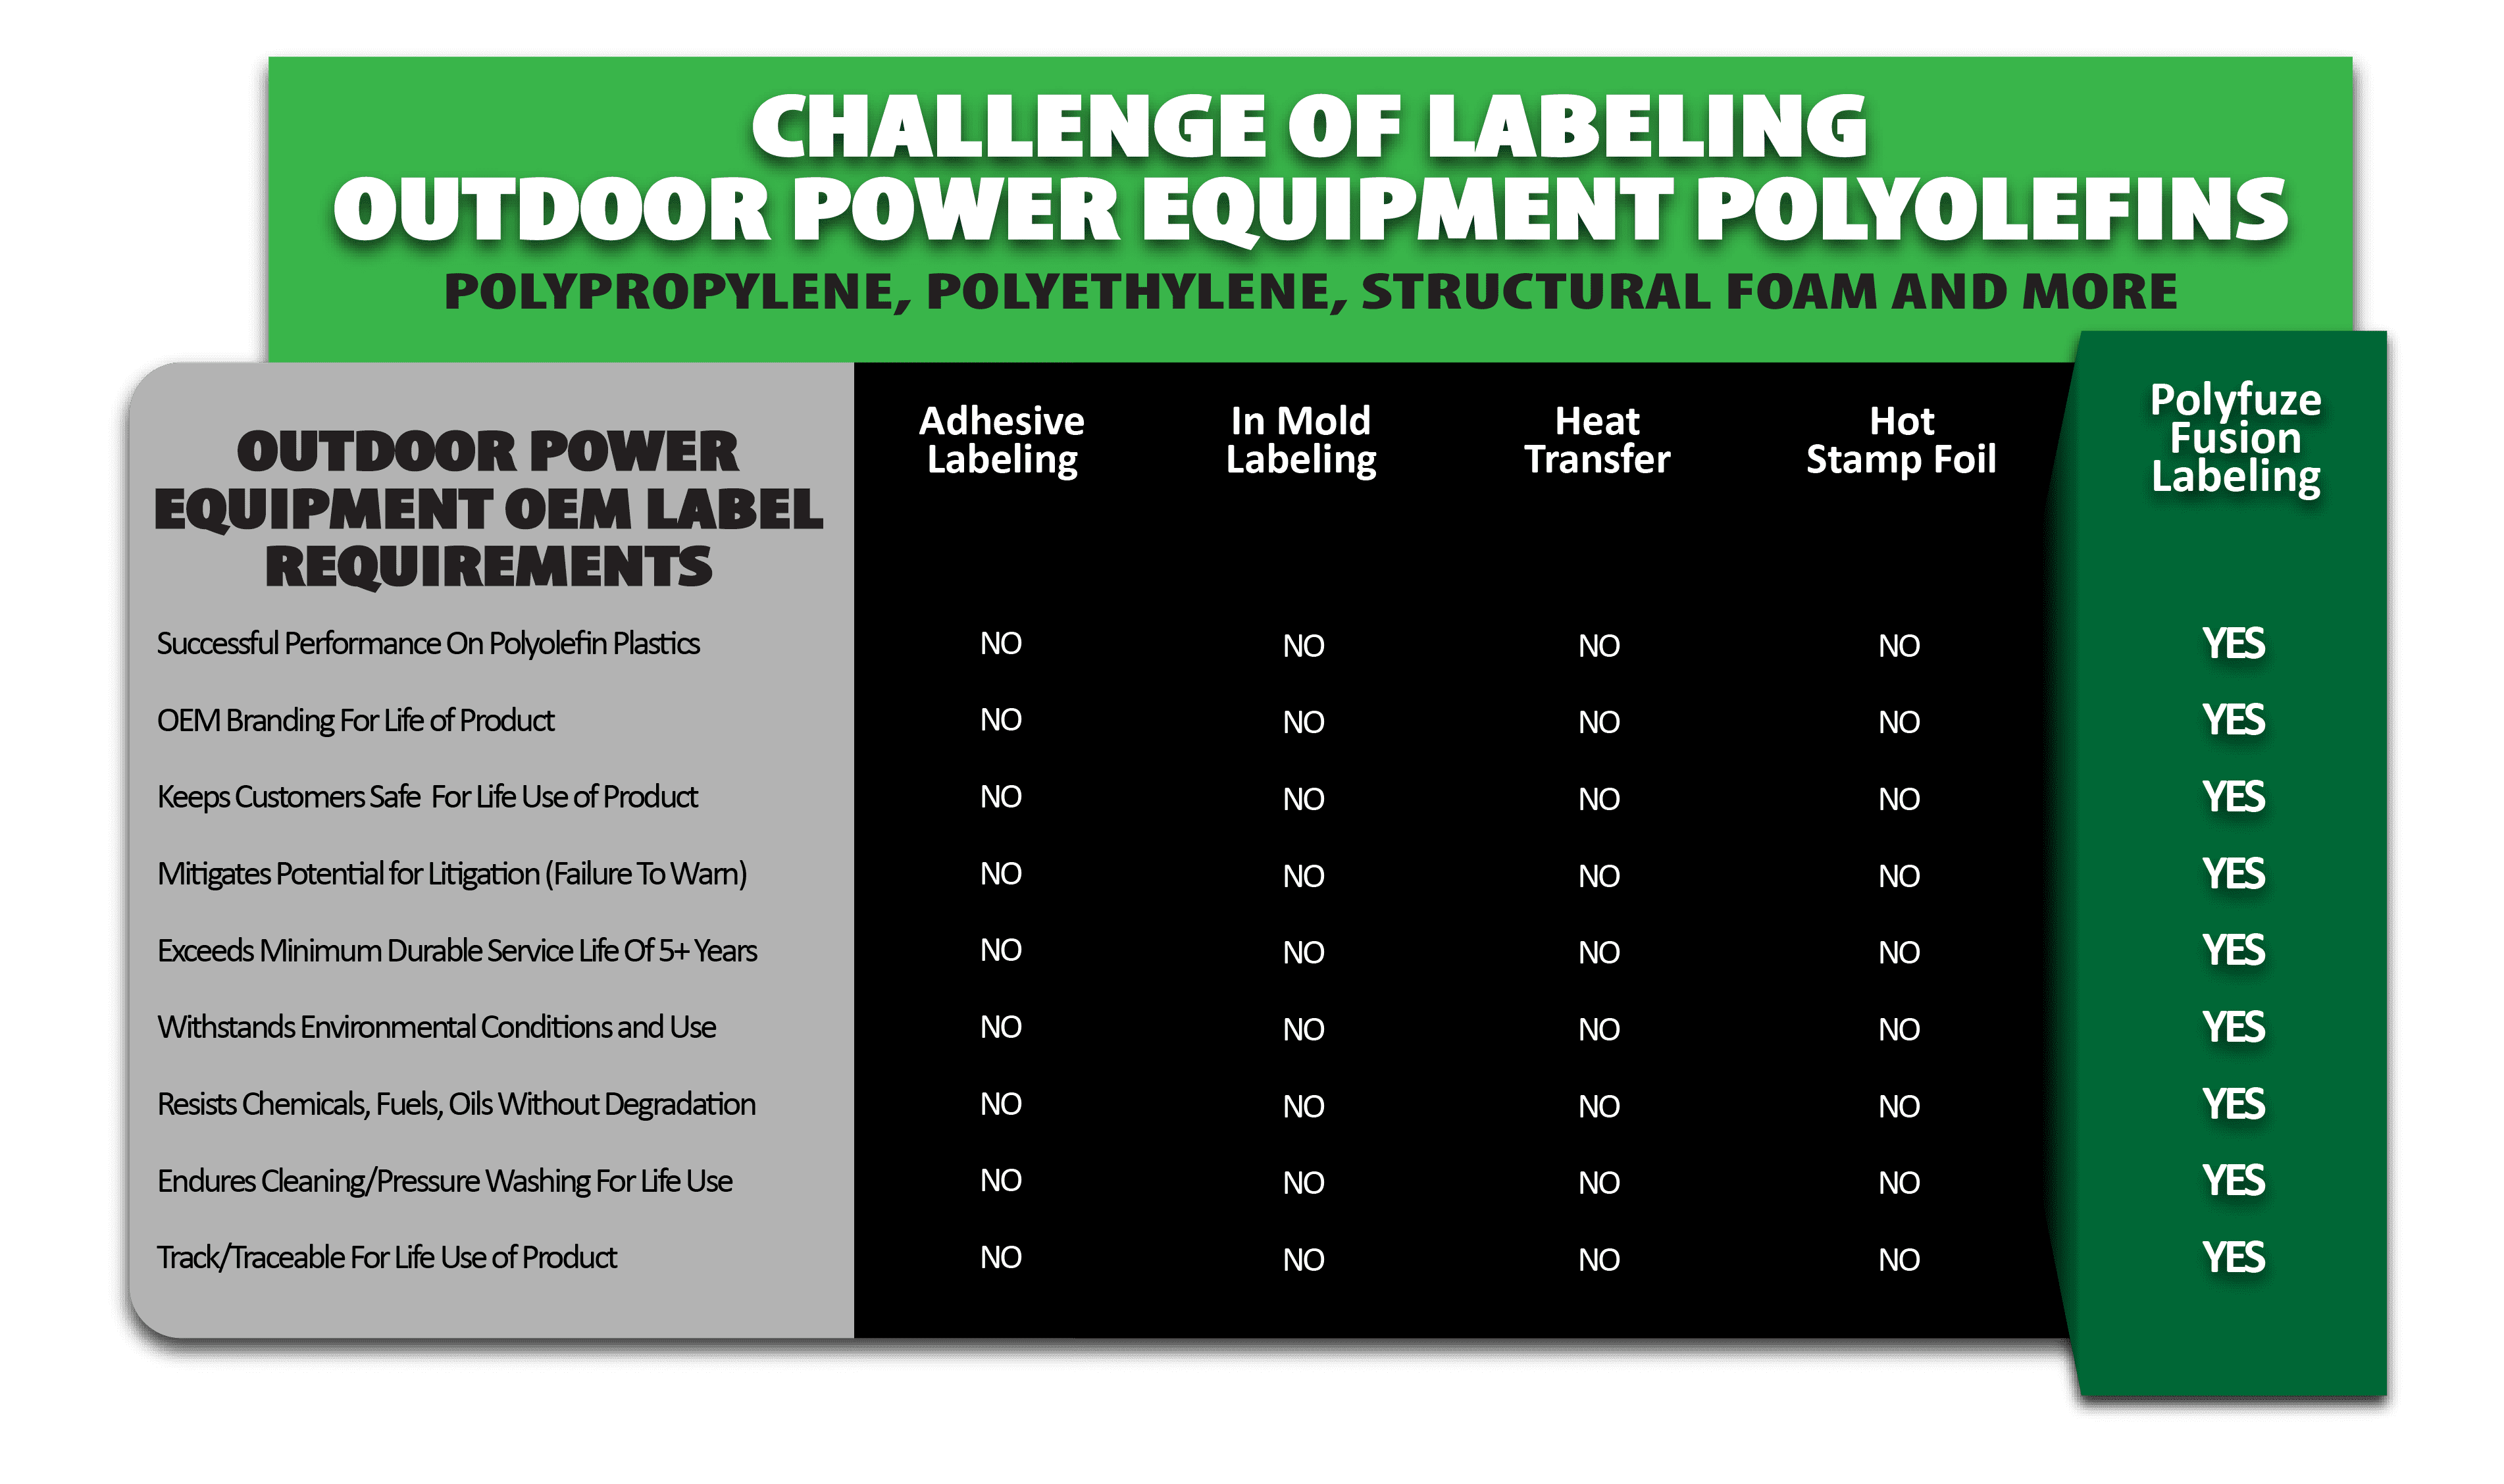 Polyfuze Fusion Labeling For Power Equipment And Lawn & Garden Polymers